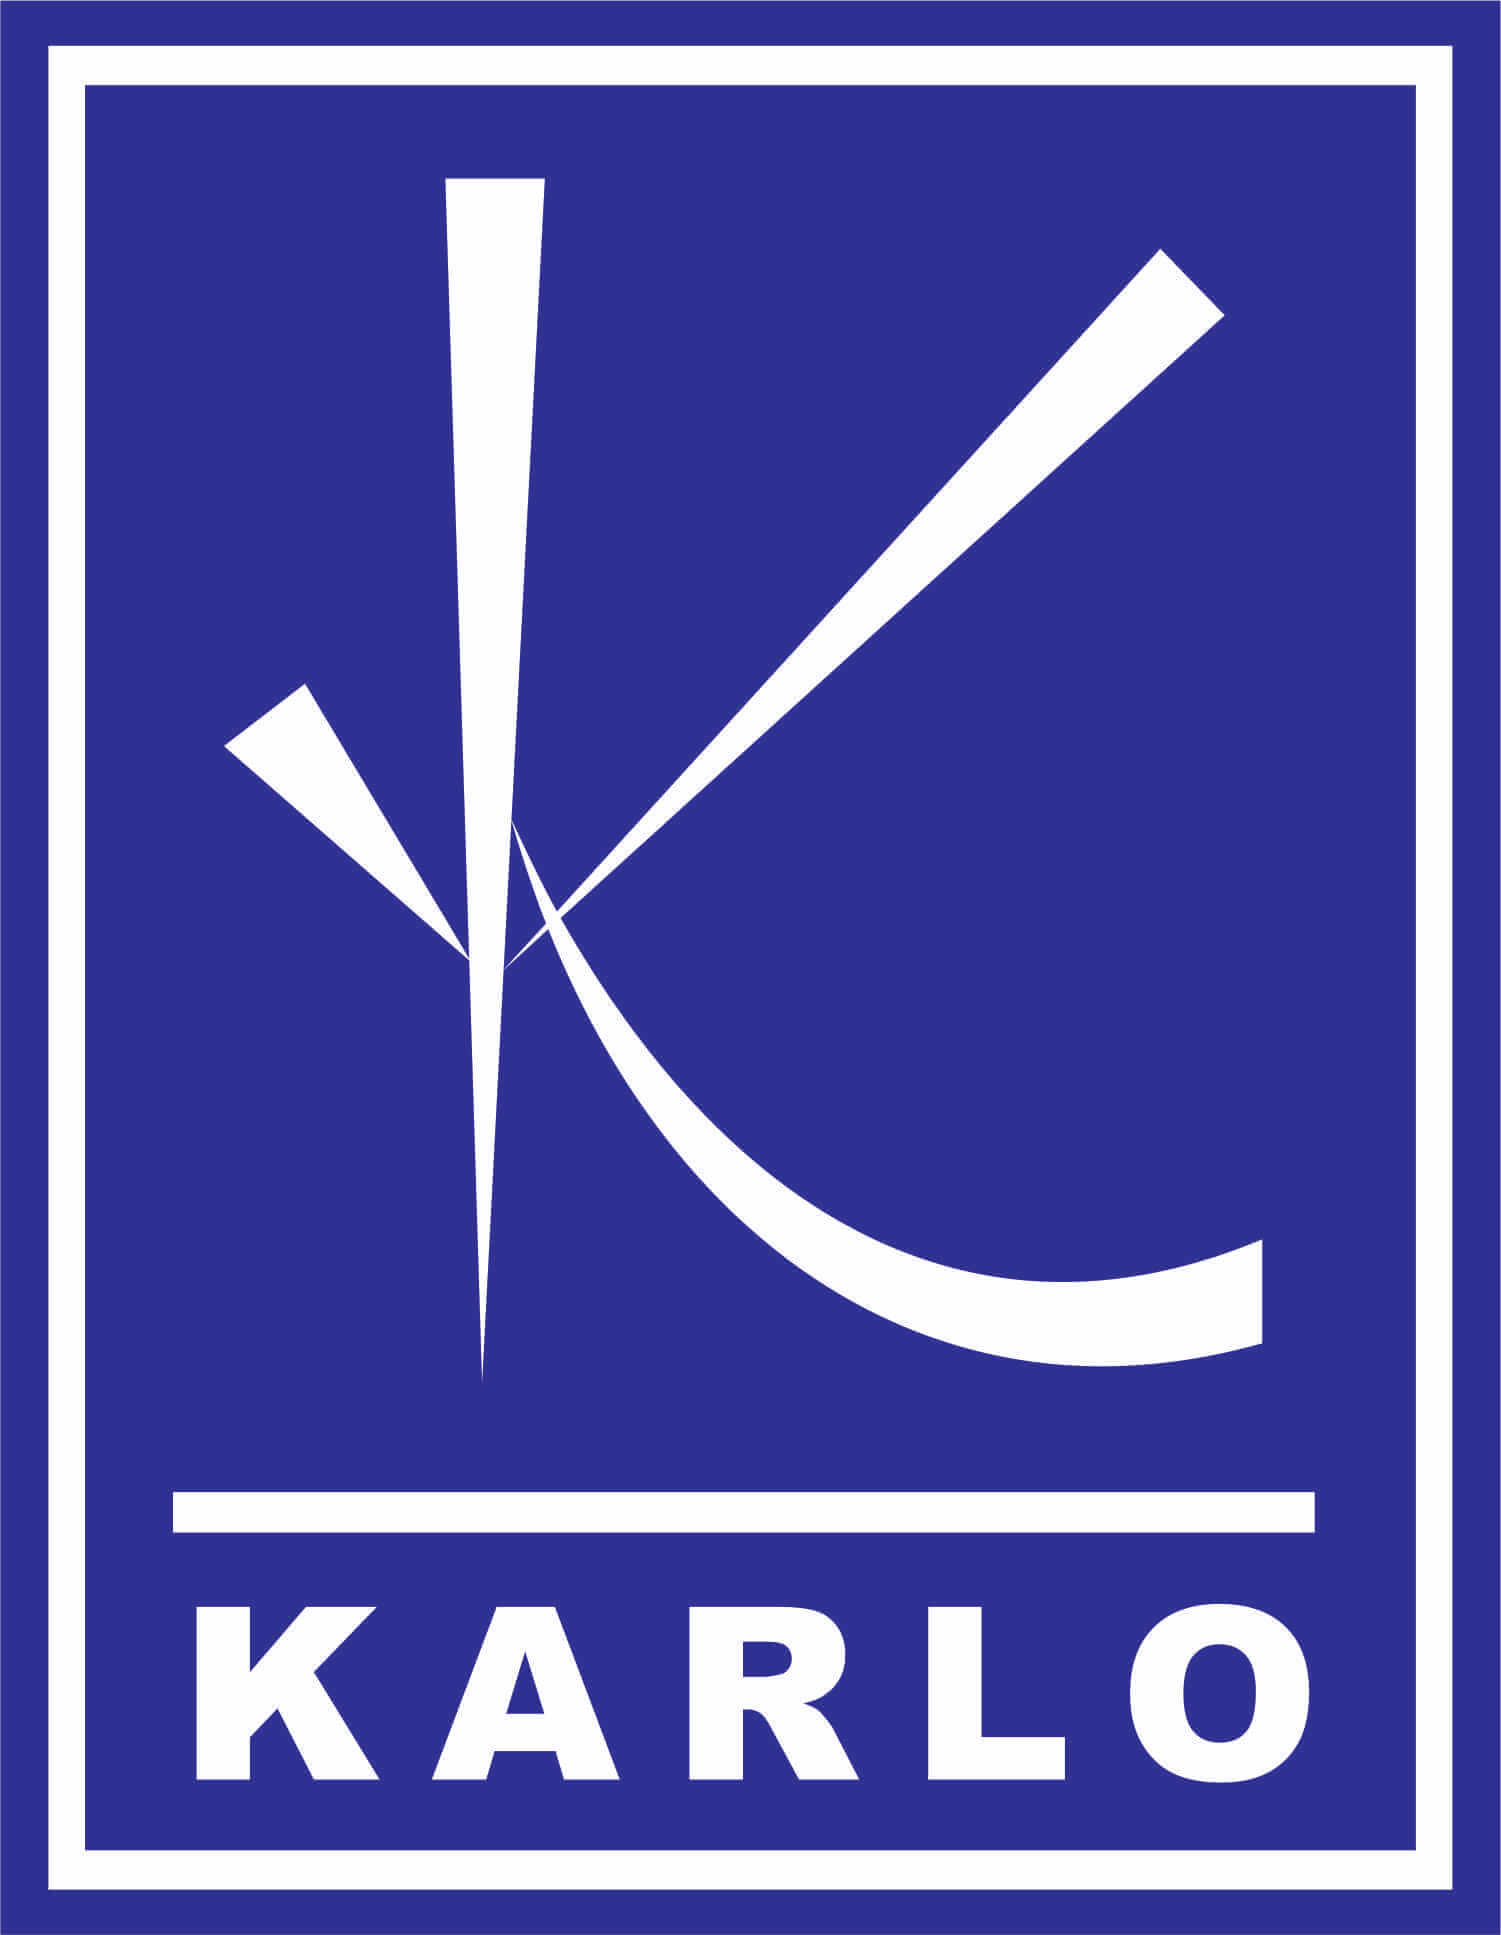 Karlo Automobiles Pvt. Ltd Logo